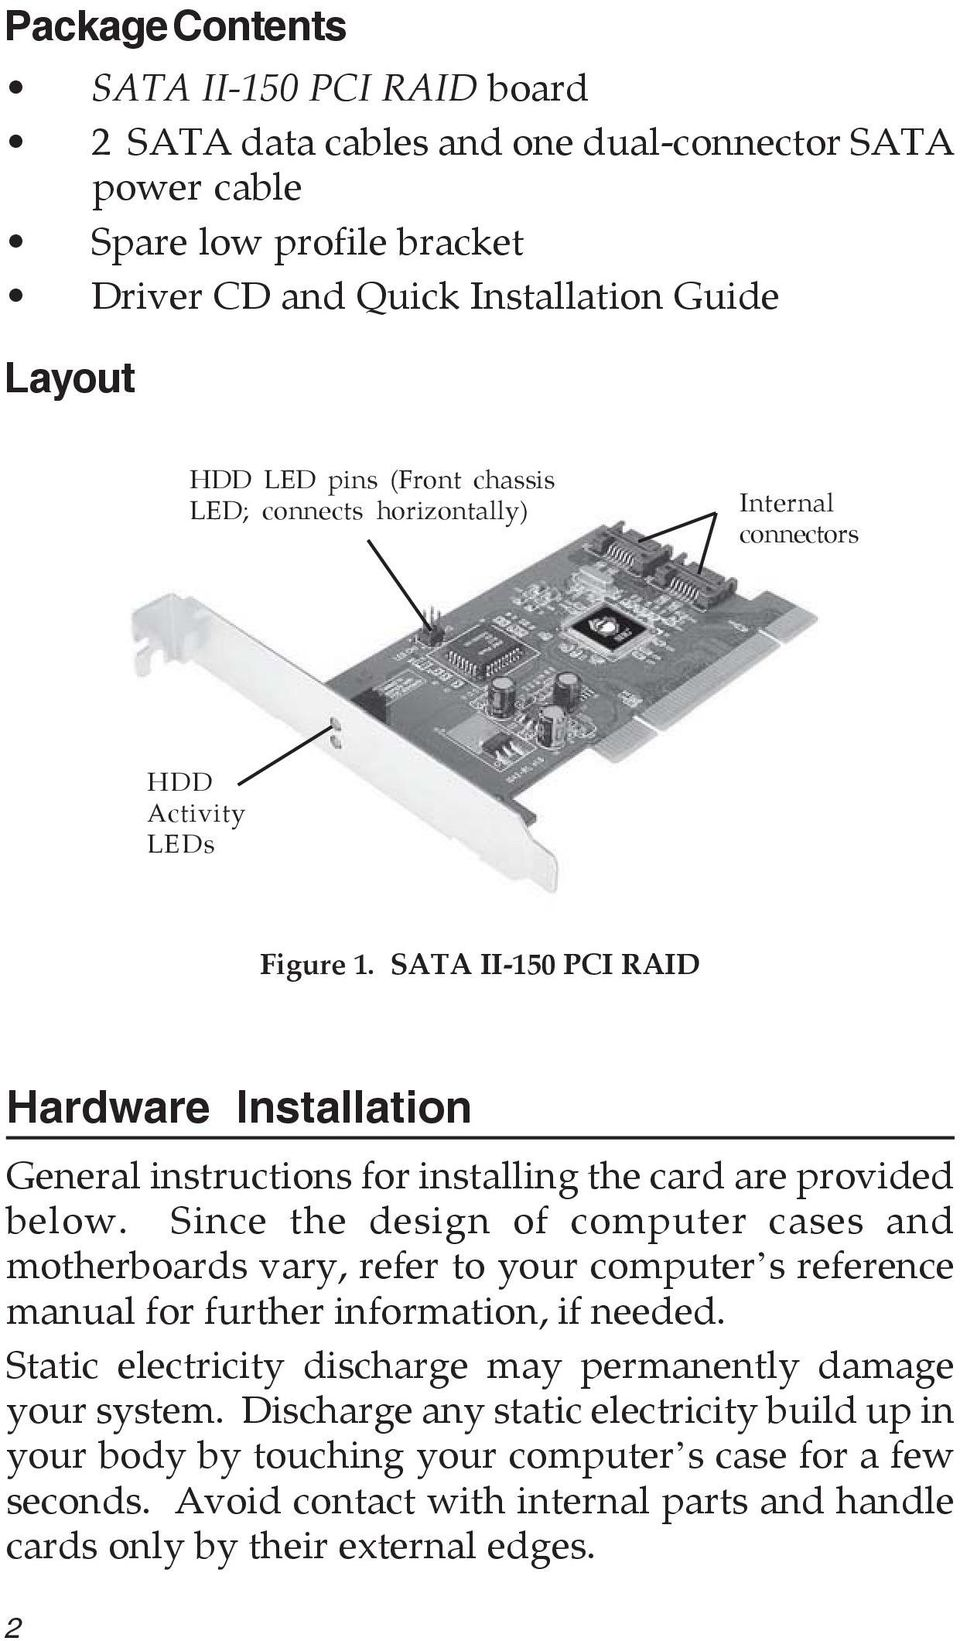 Since the design of computer cases and motherboards vary, refer to your computer s reference manual for further information, if needed.